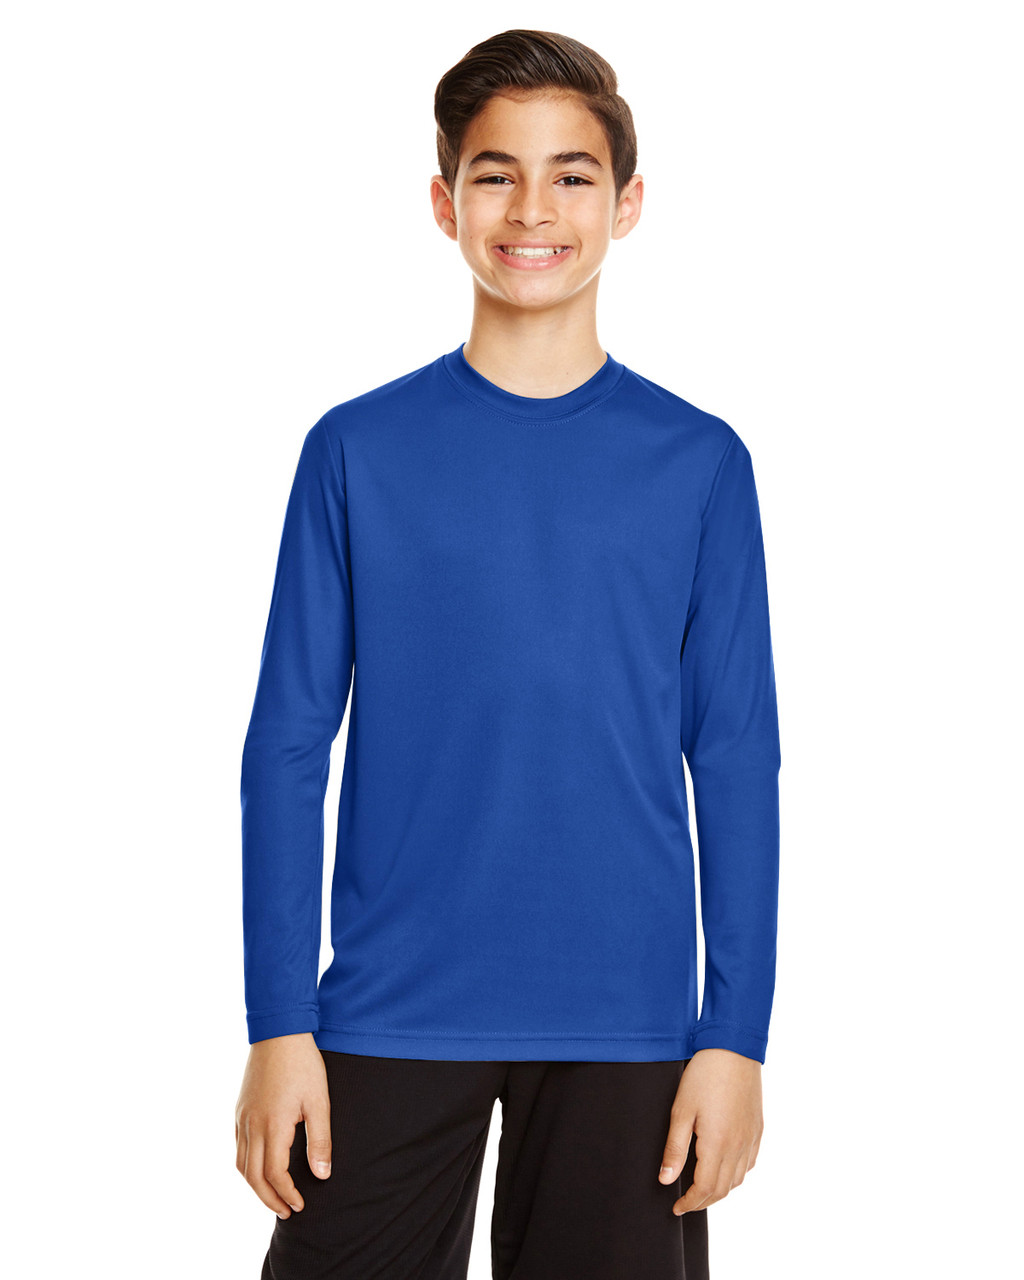 Sport Royal - TT11YL Team365 Youth Zone Performance Long Sleeve T-shirt | BlankClothing.ca